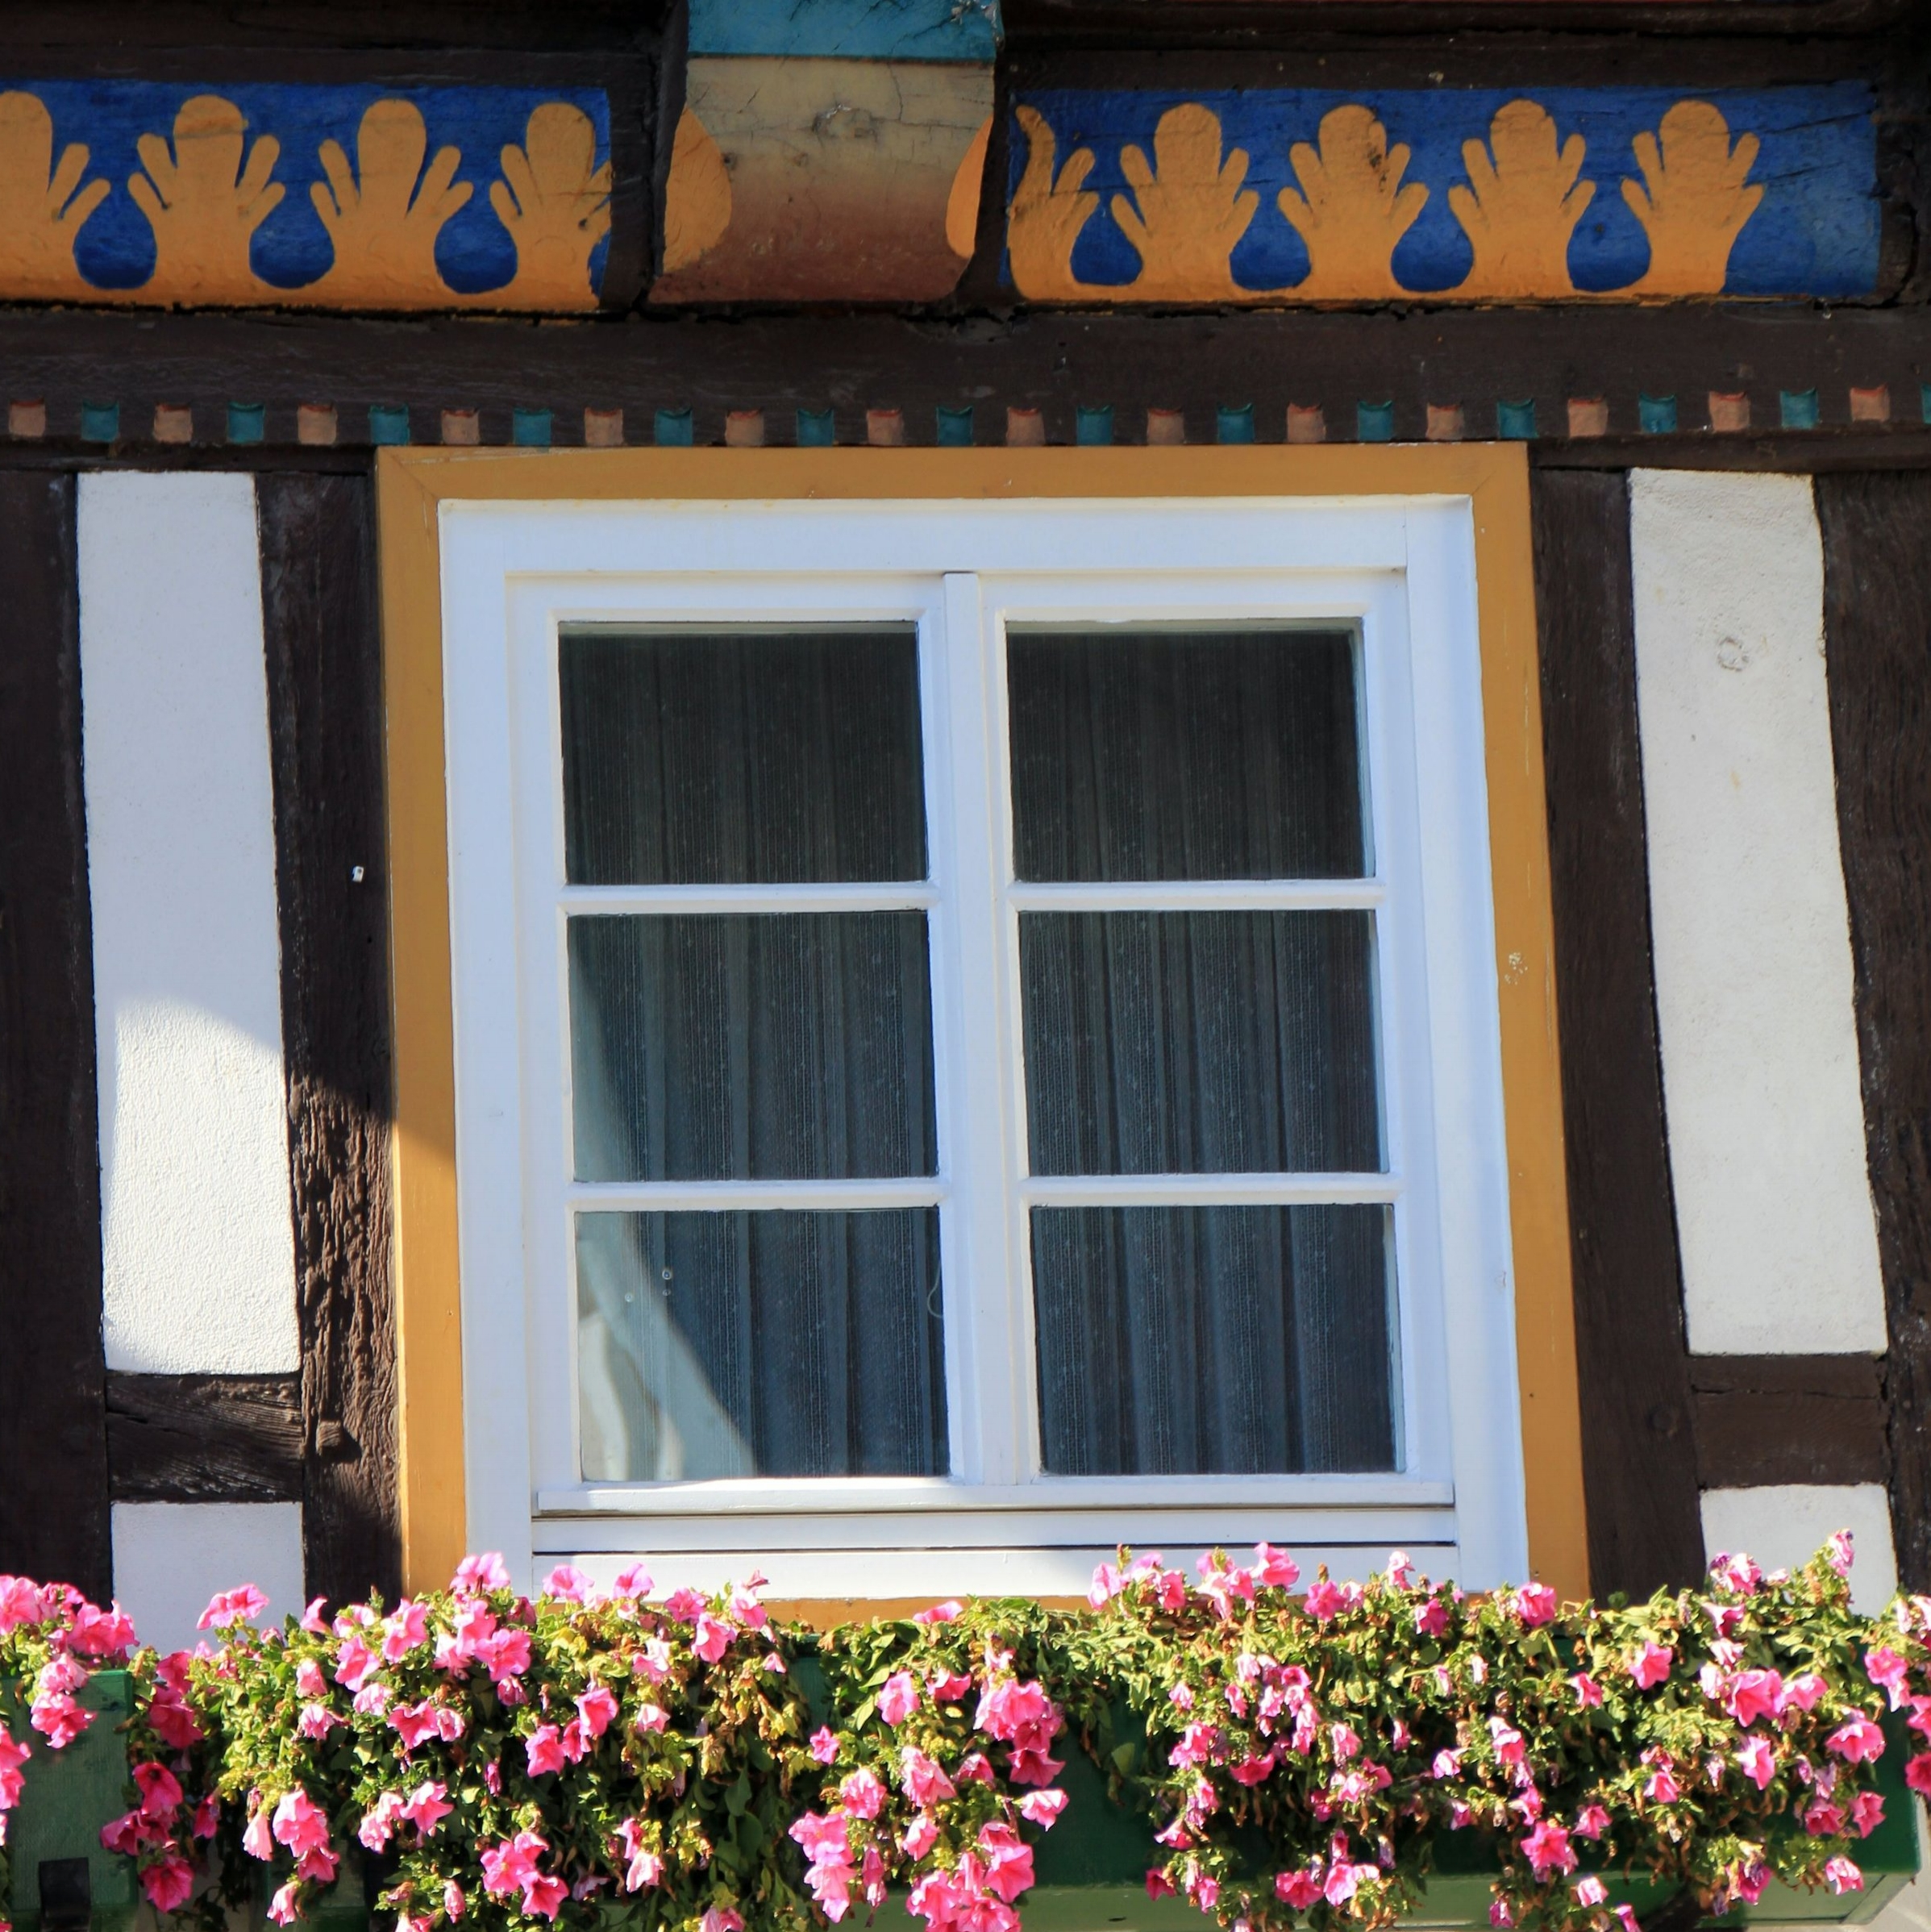 house-flower-window-building-home-summer-1346988-pxhere.com.jpg